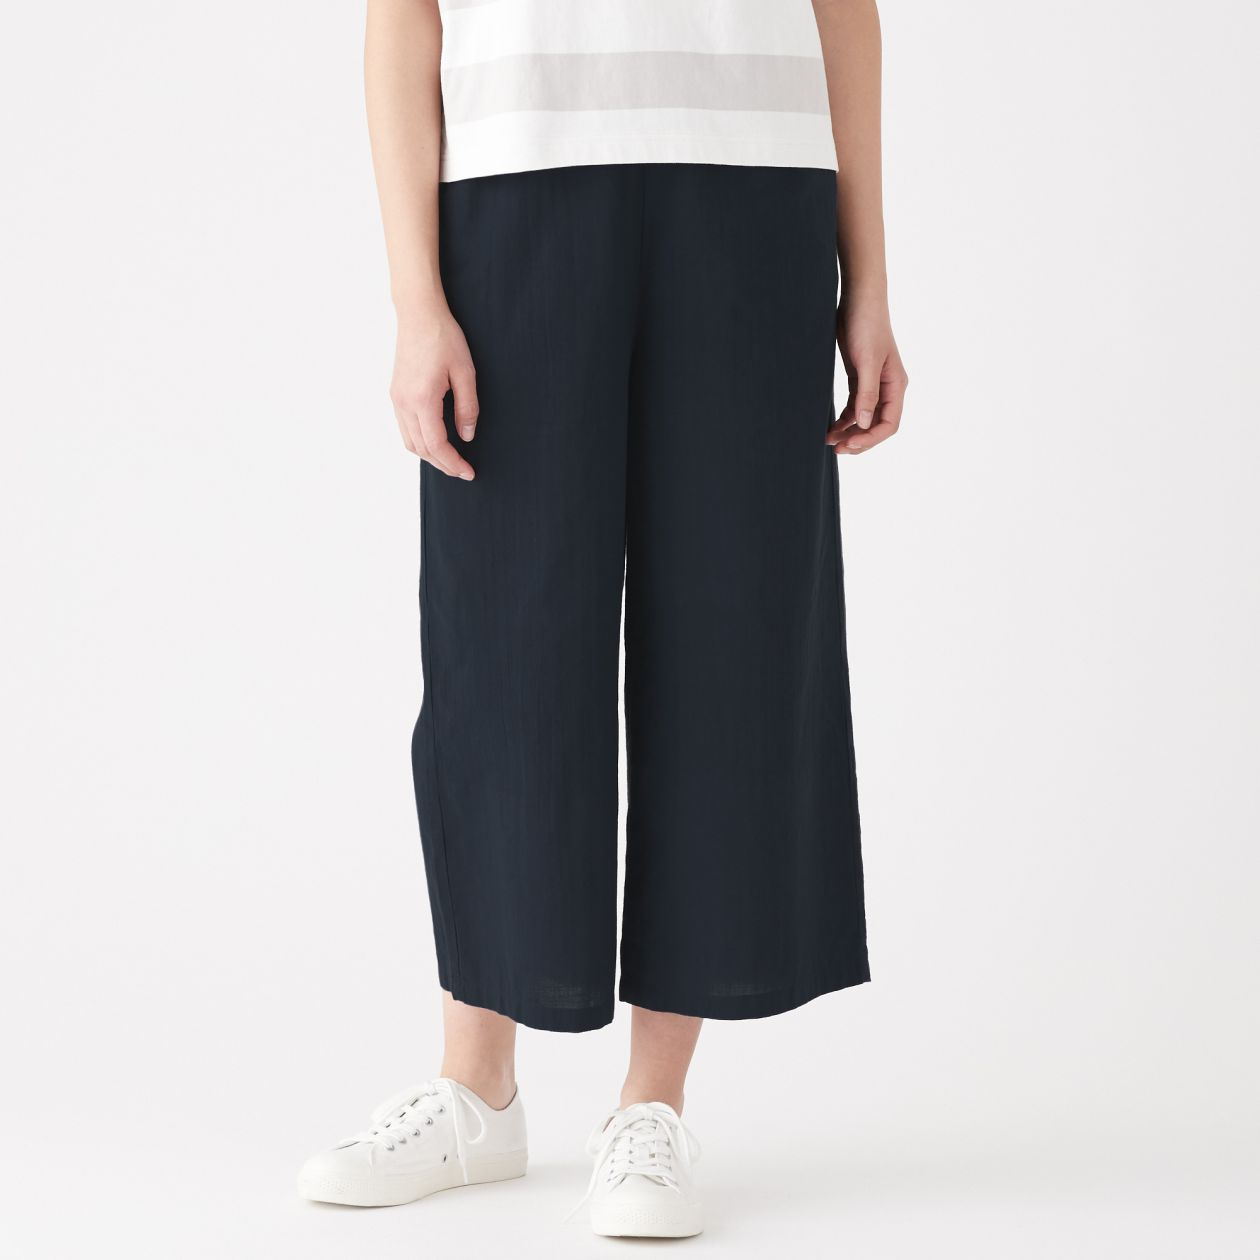 INDIAN HAND SPUN/WOVEN EASY WIDE TROUSERS